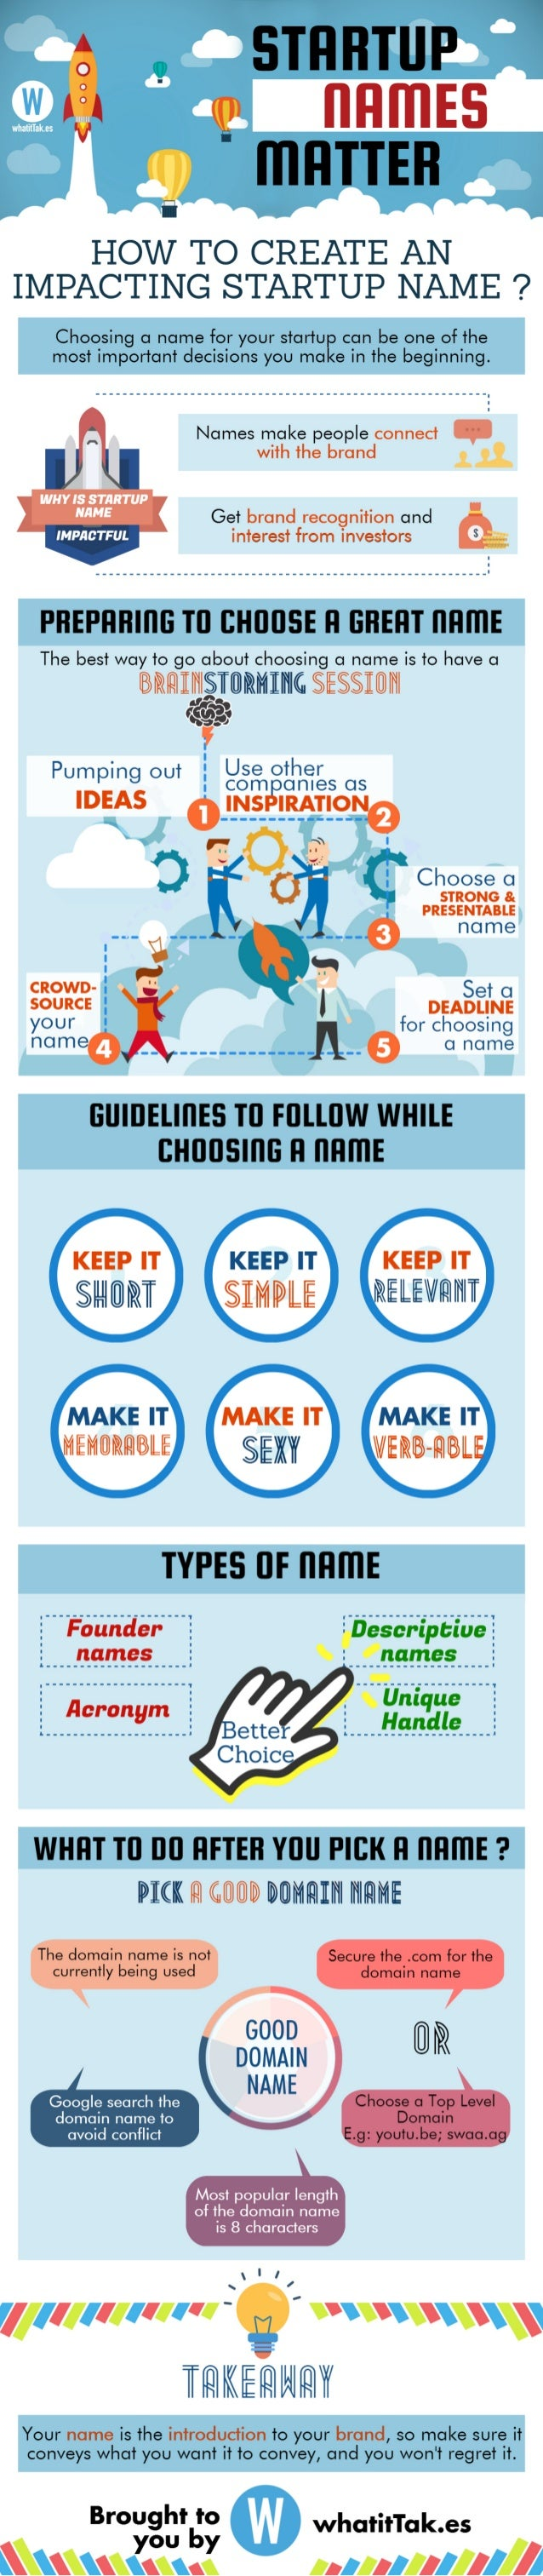 INFOGRAPHIC - How To Create An Impacting Startup Name